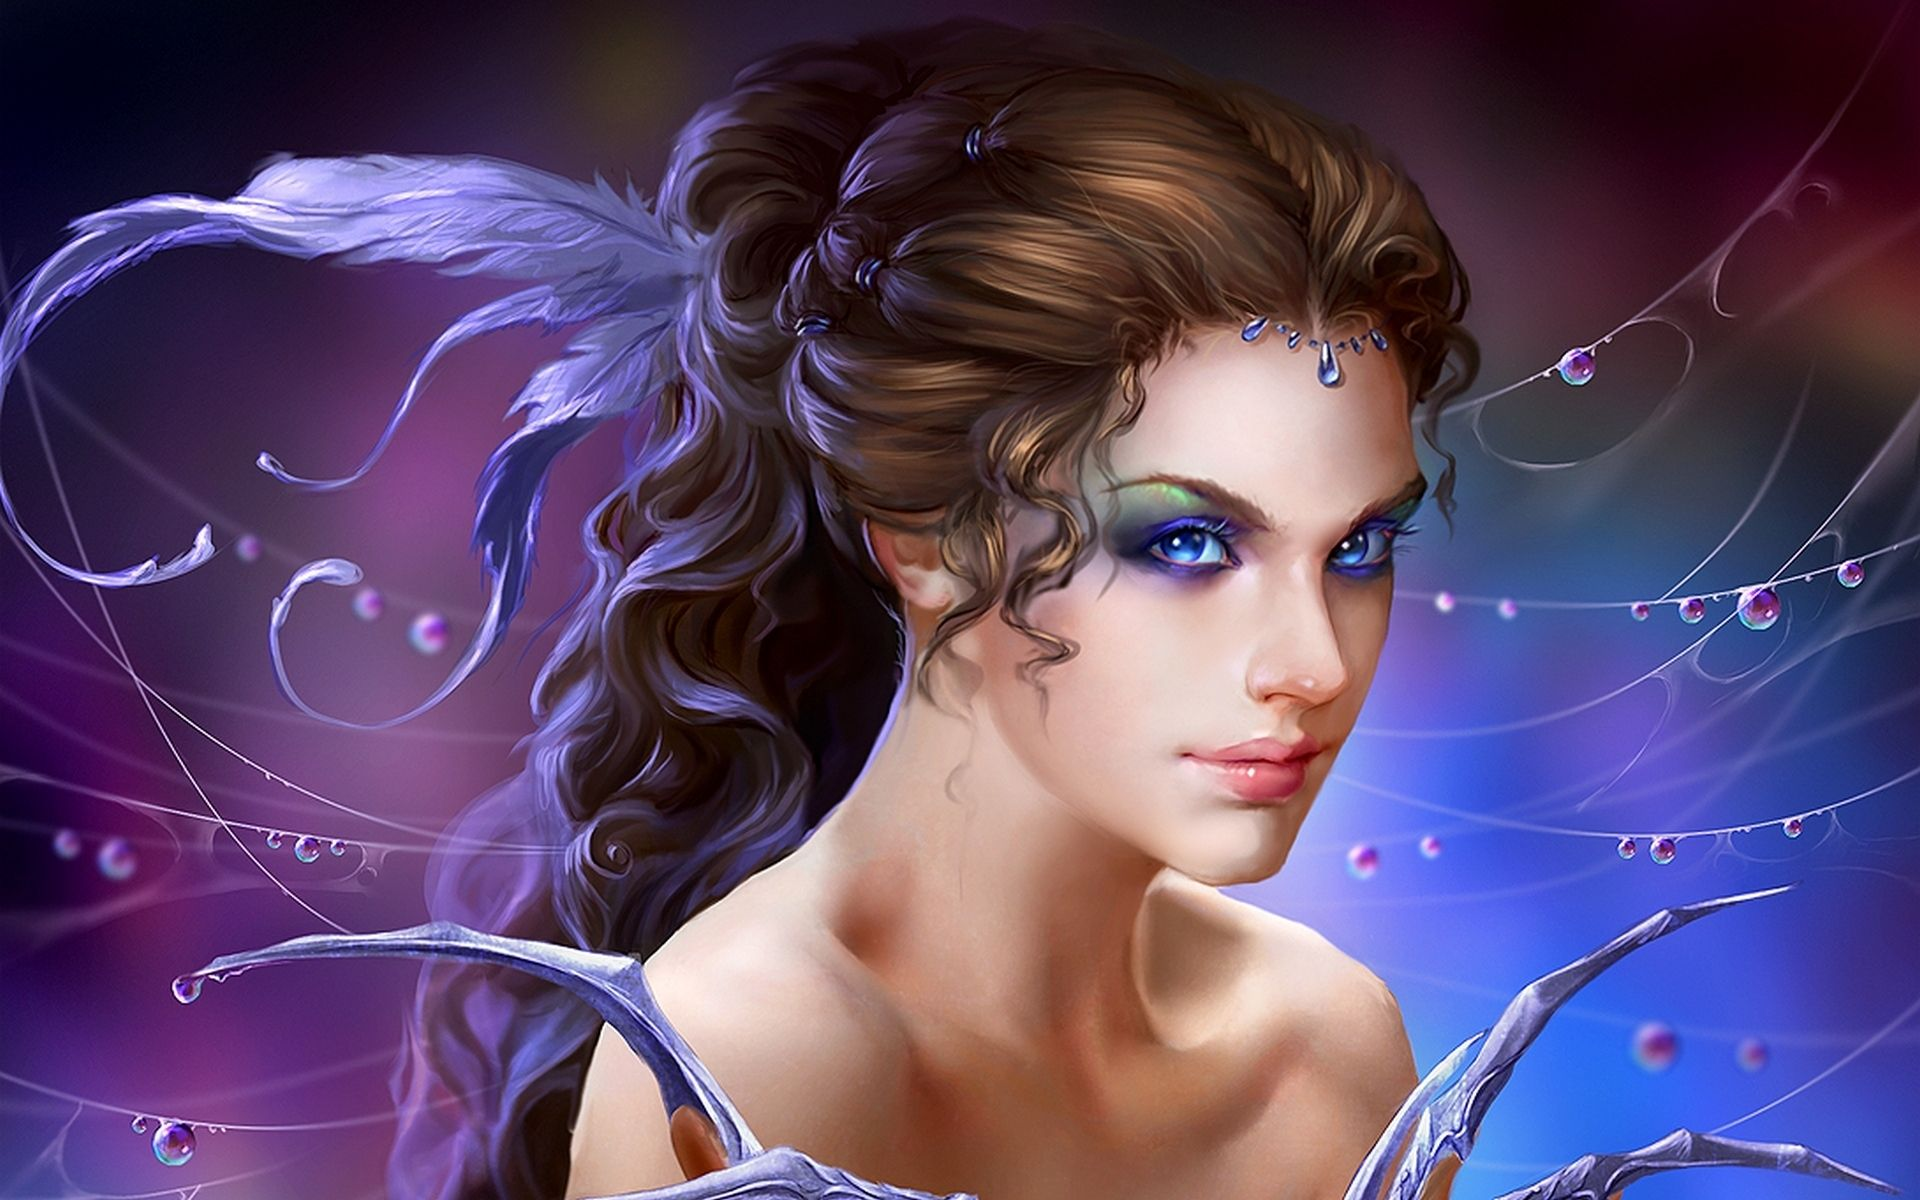 Beautiful fantasy fairy pictures cute girl fantasy 3d - 3d fantasy wallpaper ...